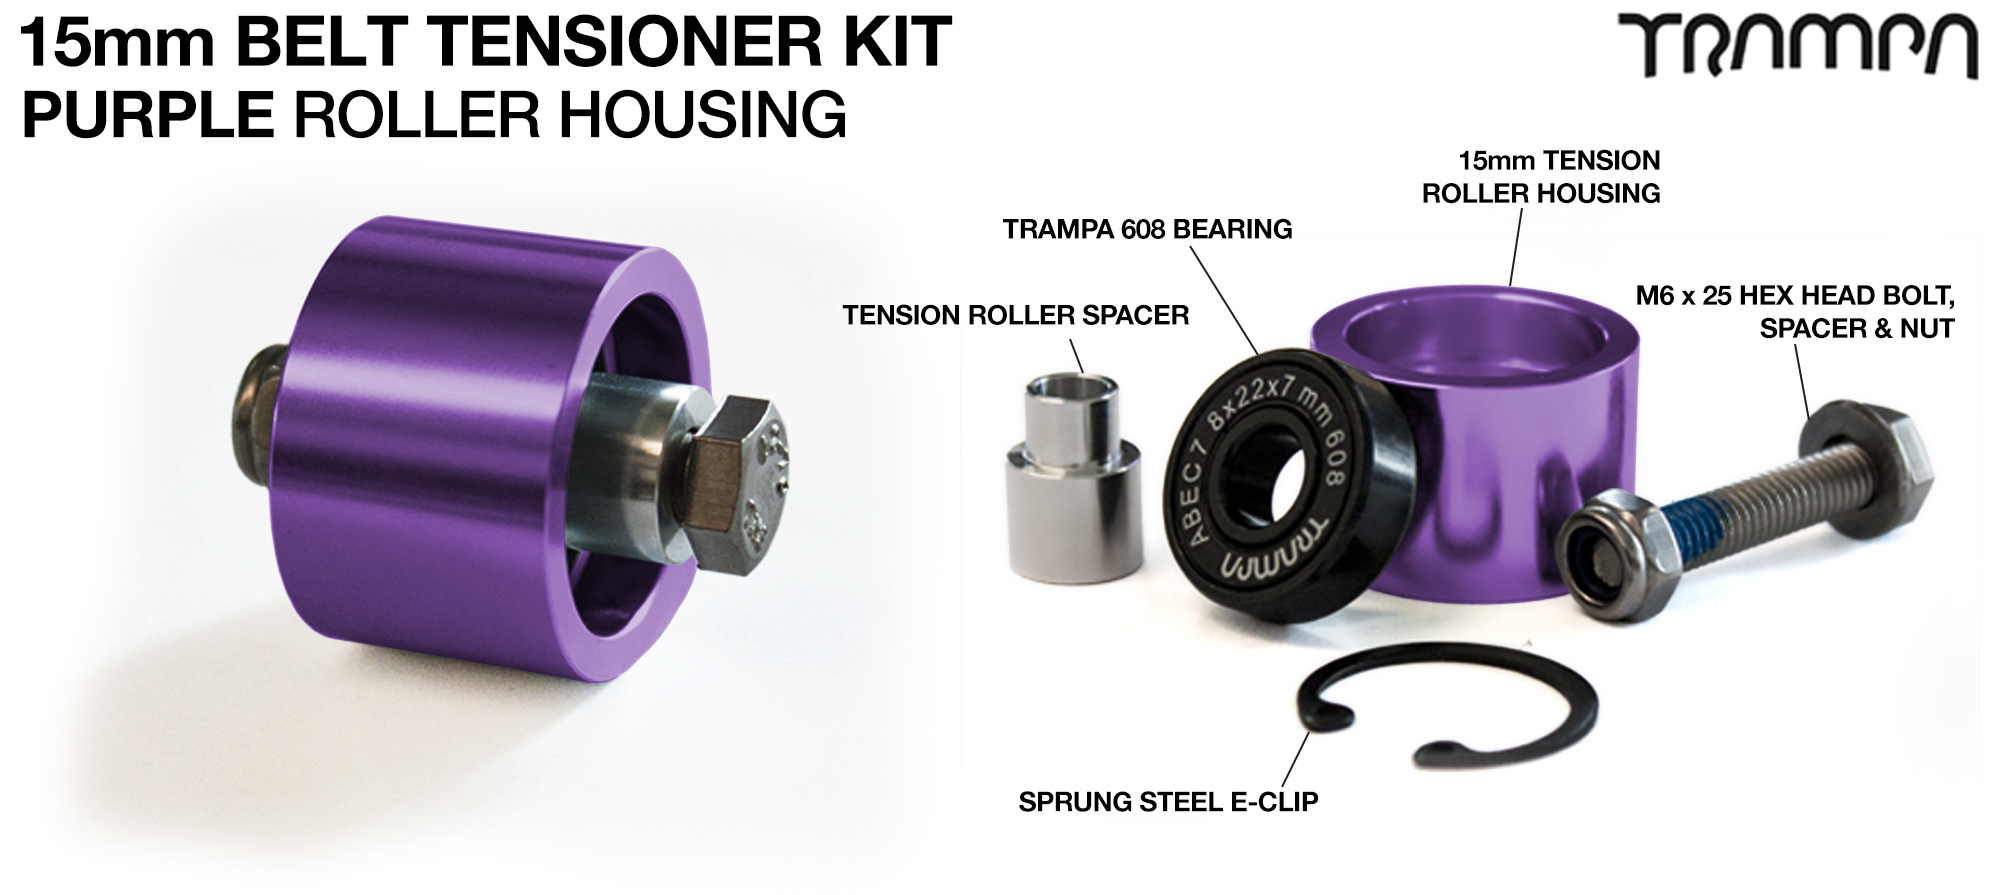 OPEN BELT DRIVE Belt Tensioning System for 15mm Belts - PURPLE